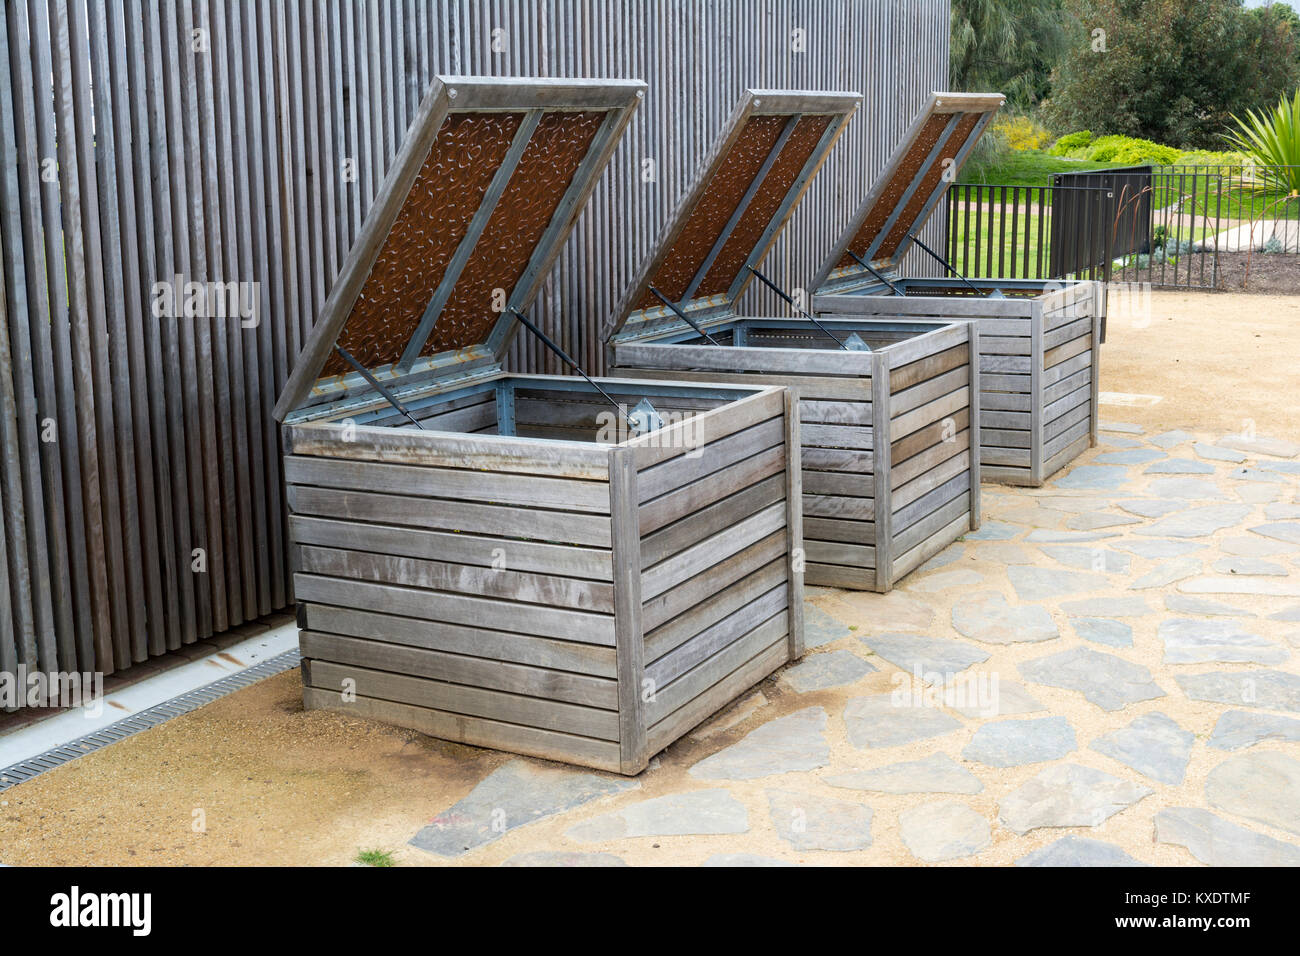 Three wooden compost bins  lined up with lids open ready to be used. Stock Photo